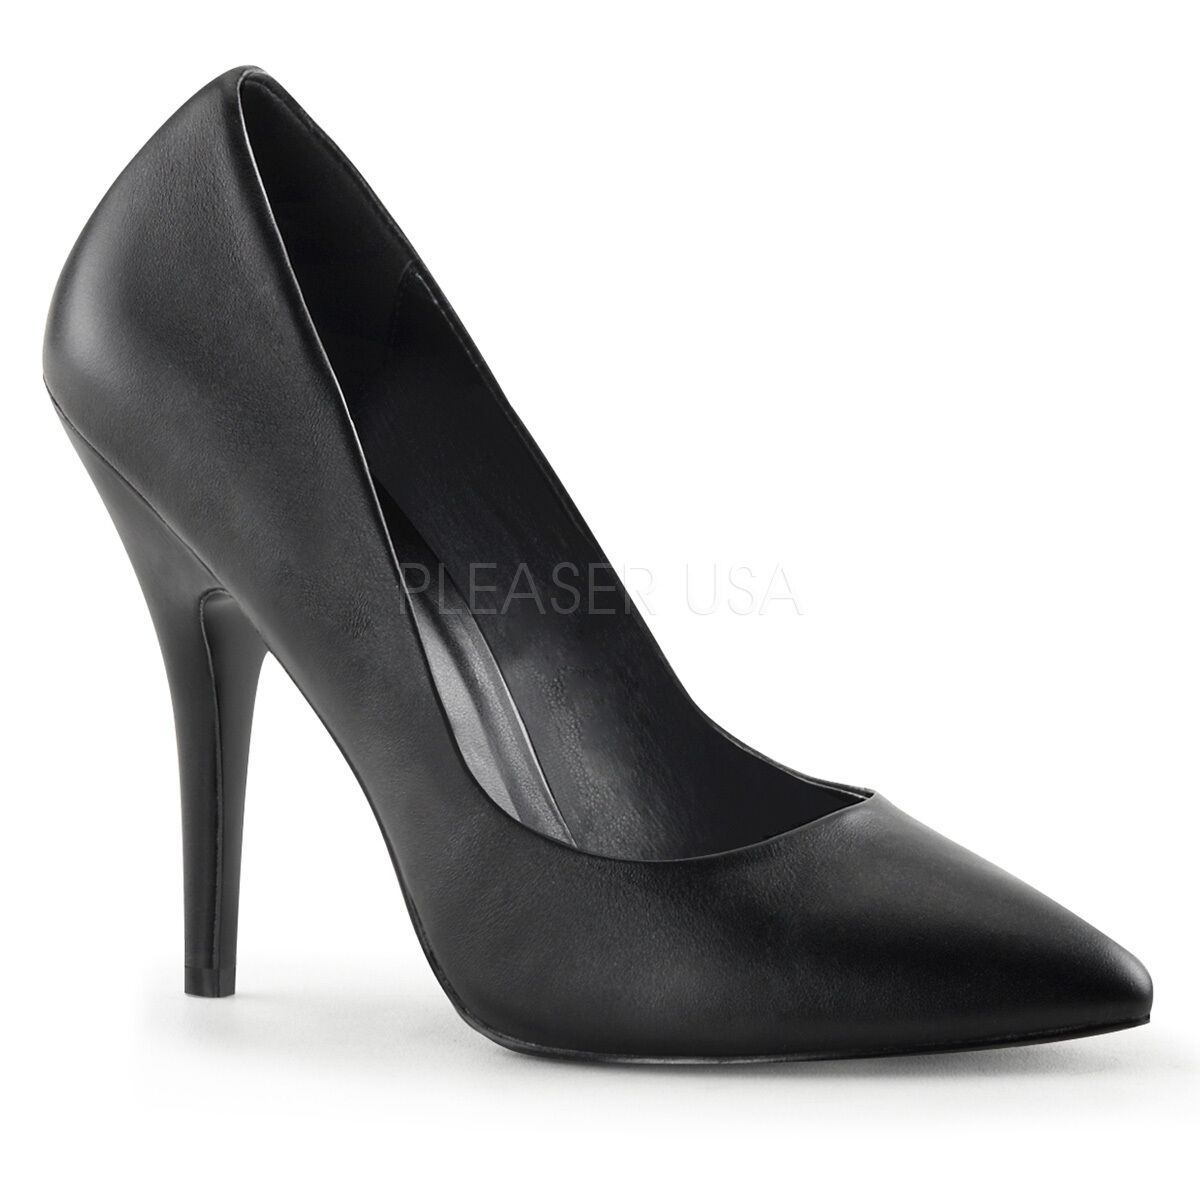 Pleaser Seduce-420 Damenschuhe Pointy Schuhes Court Sexy Stiletto High Heels Pointy Damenschuhe Toe New 75fe88